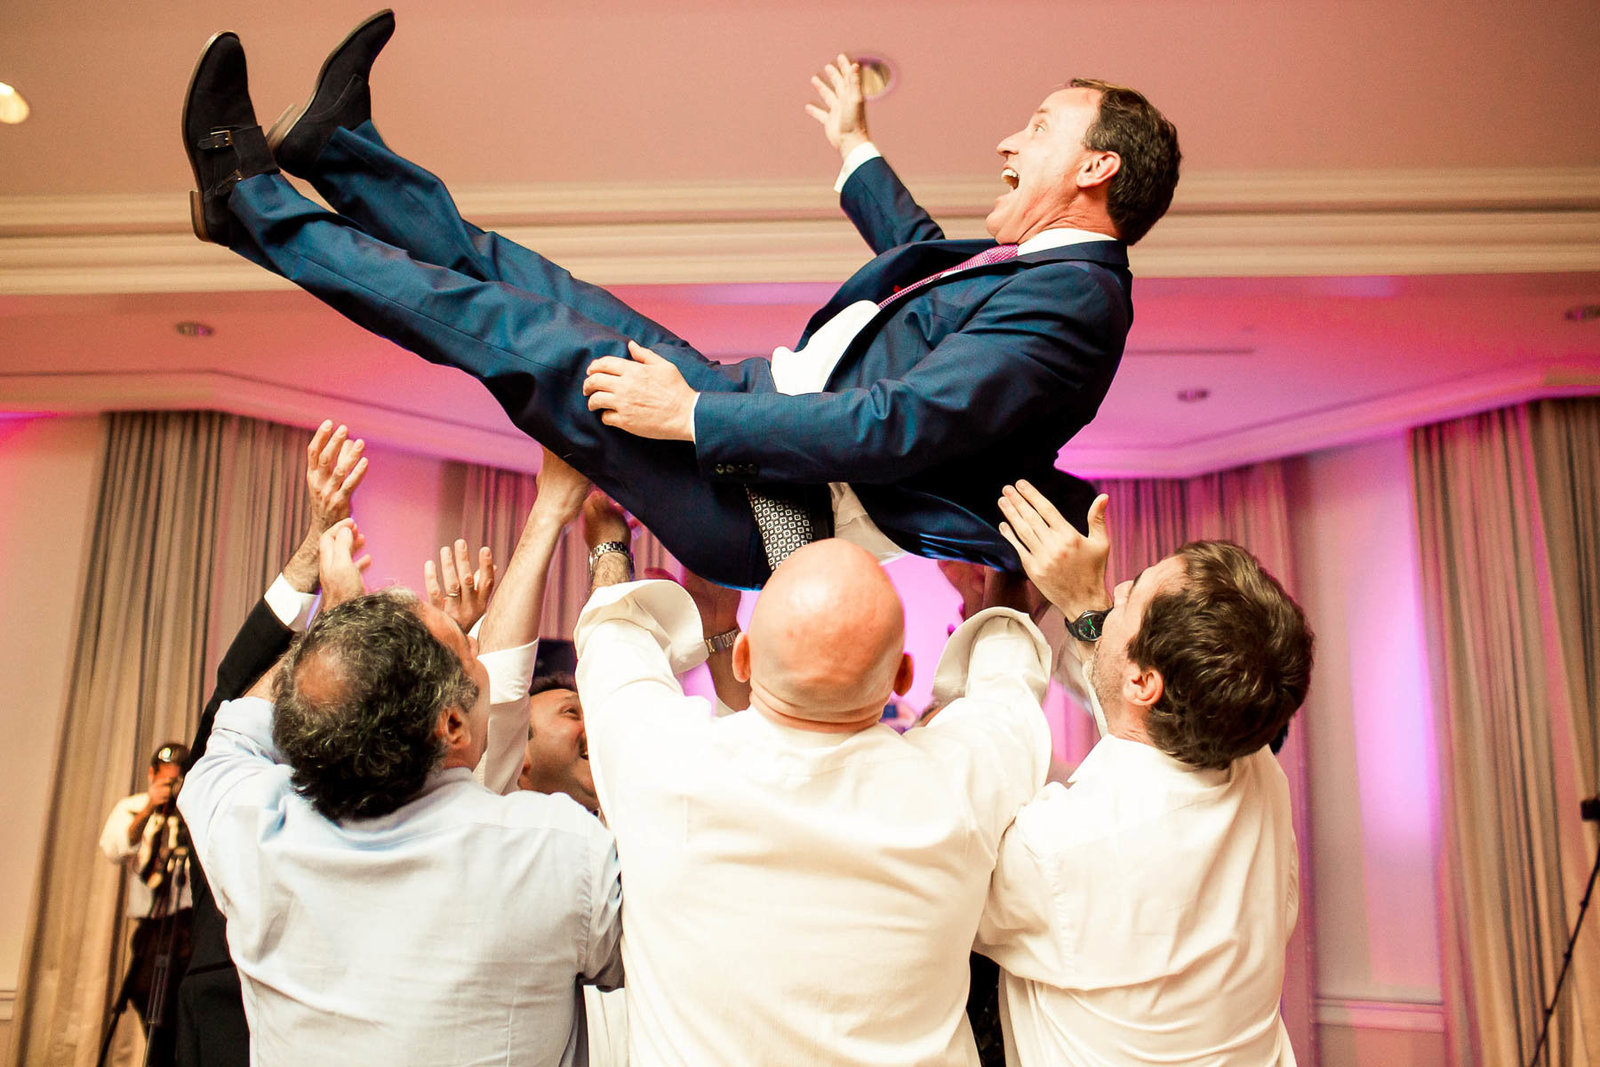 Guests are tossed in the air at reception, Daniel Island Club, Charleston, South Carolina